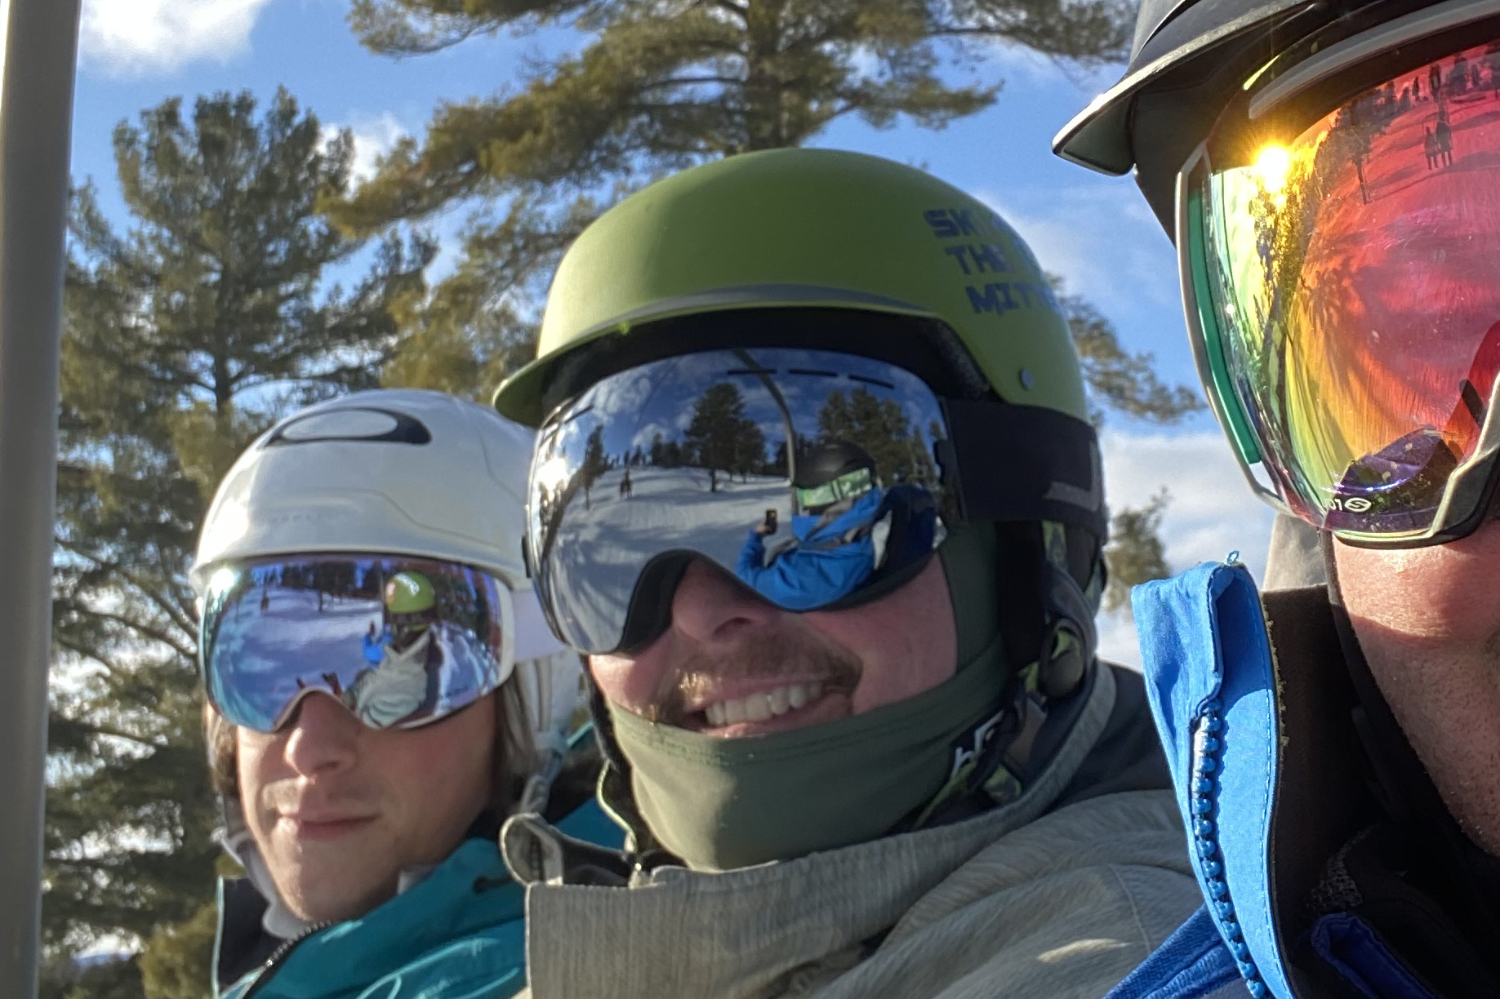 skiers wearing ski goggles on chairlift